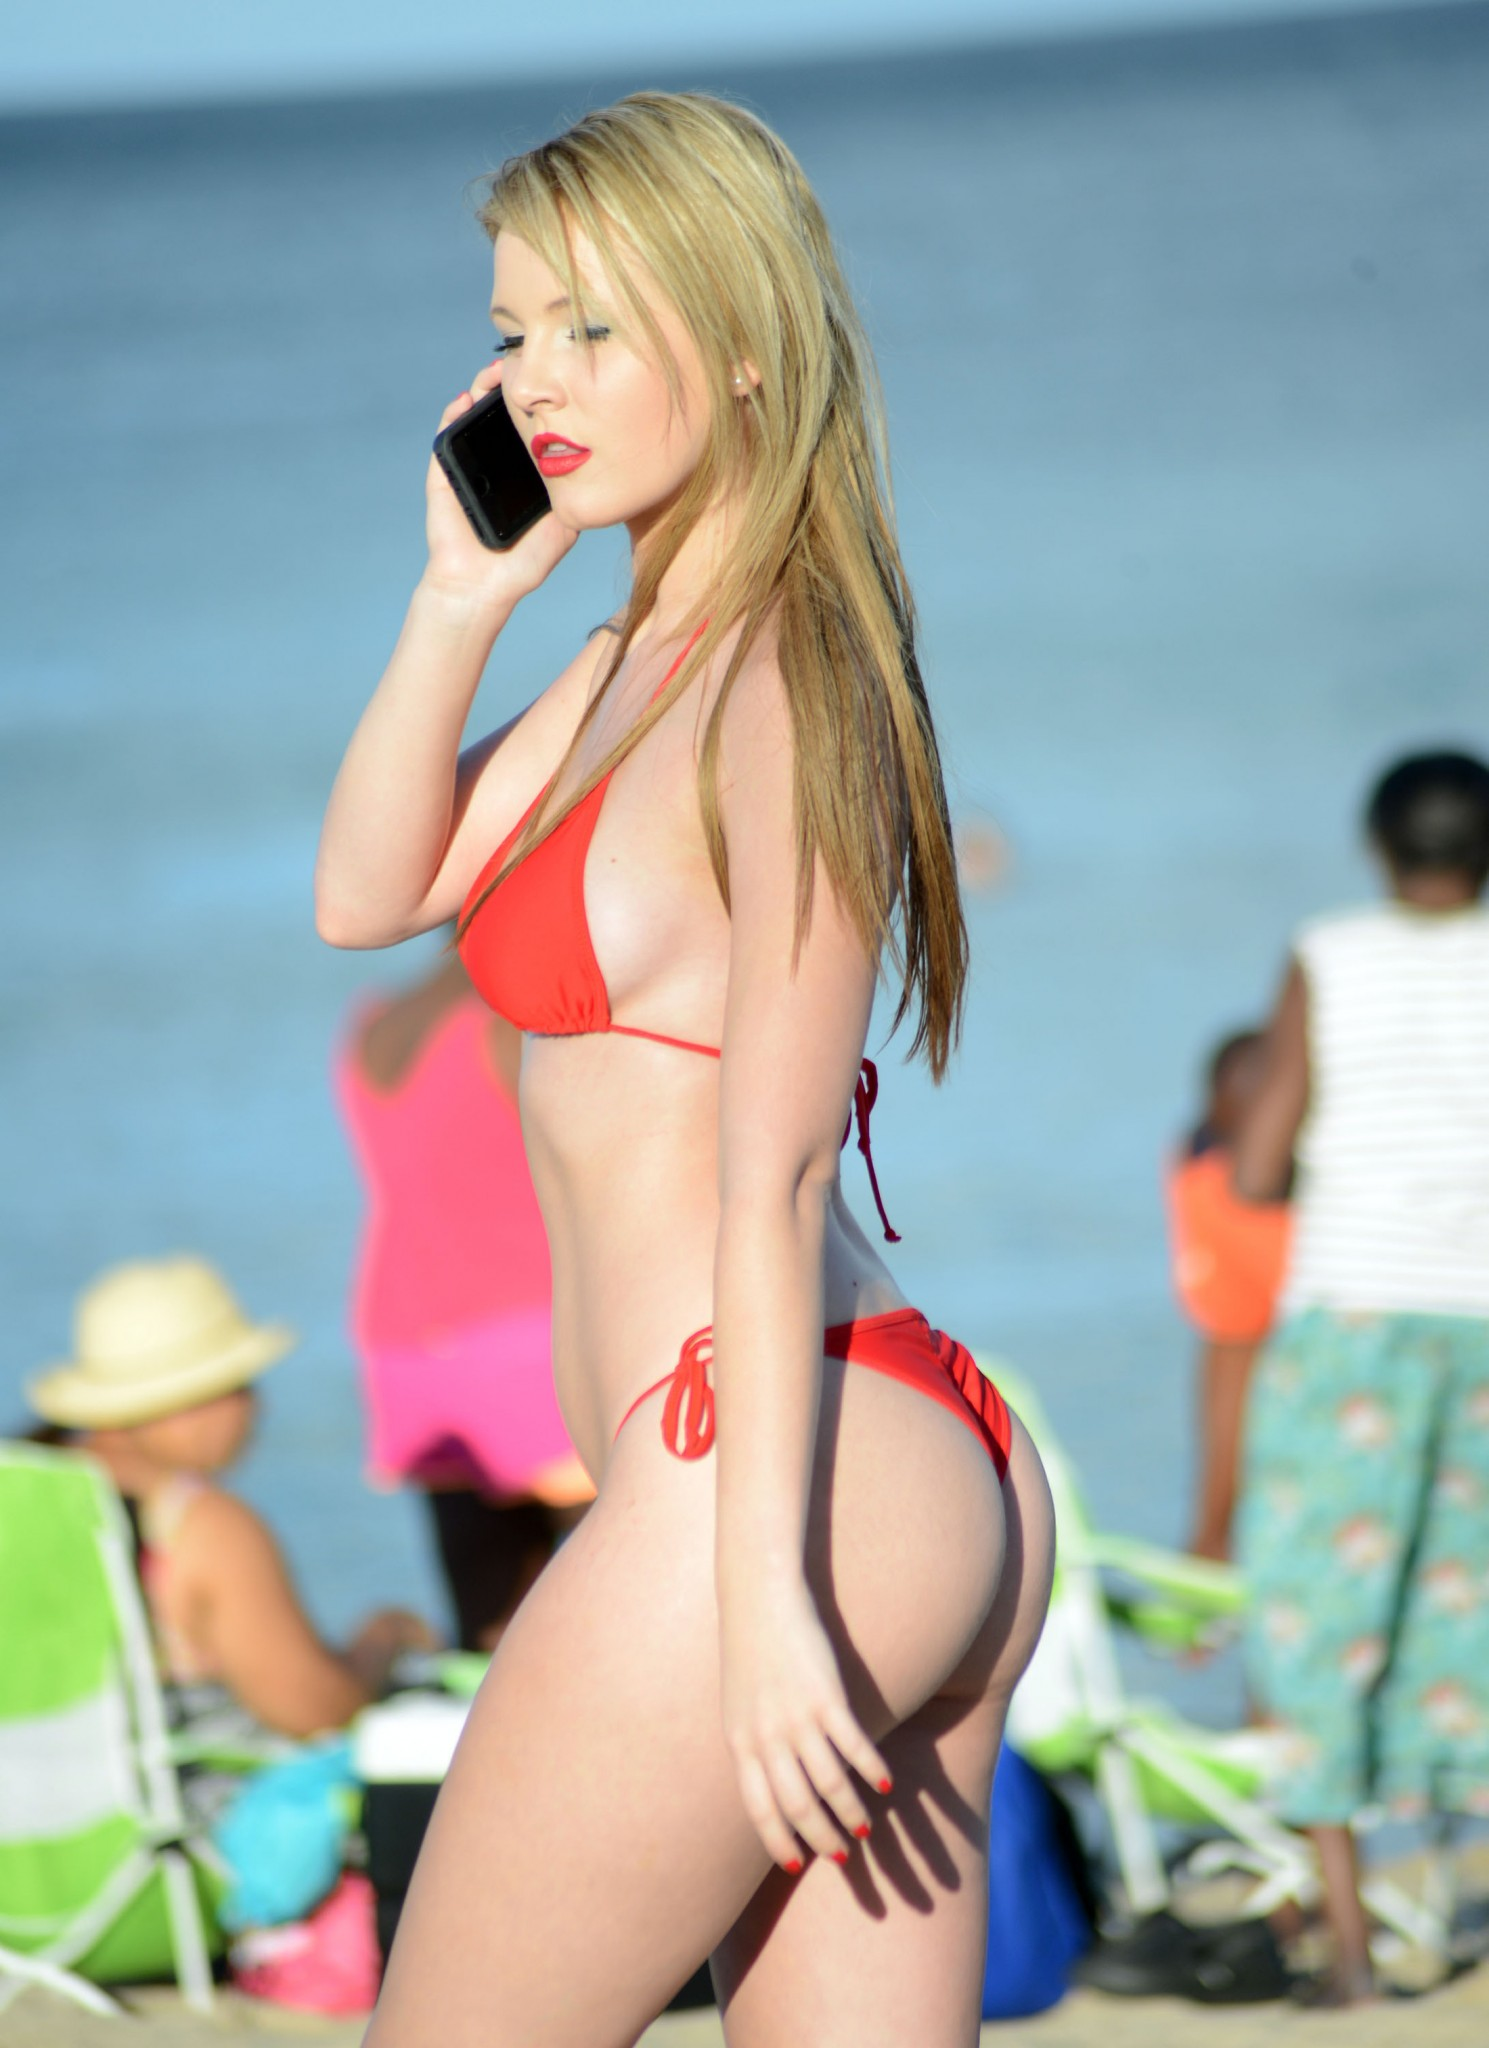 rachel-sanders-wearing-a-tiny-red-bikini-in-miami-04